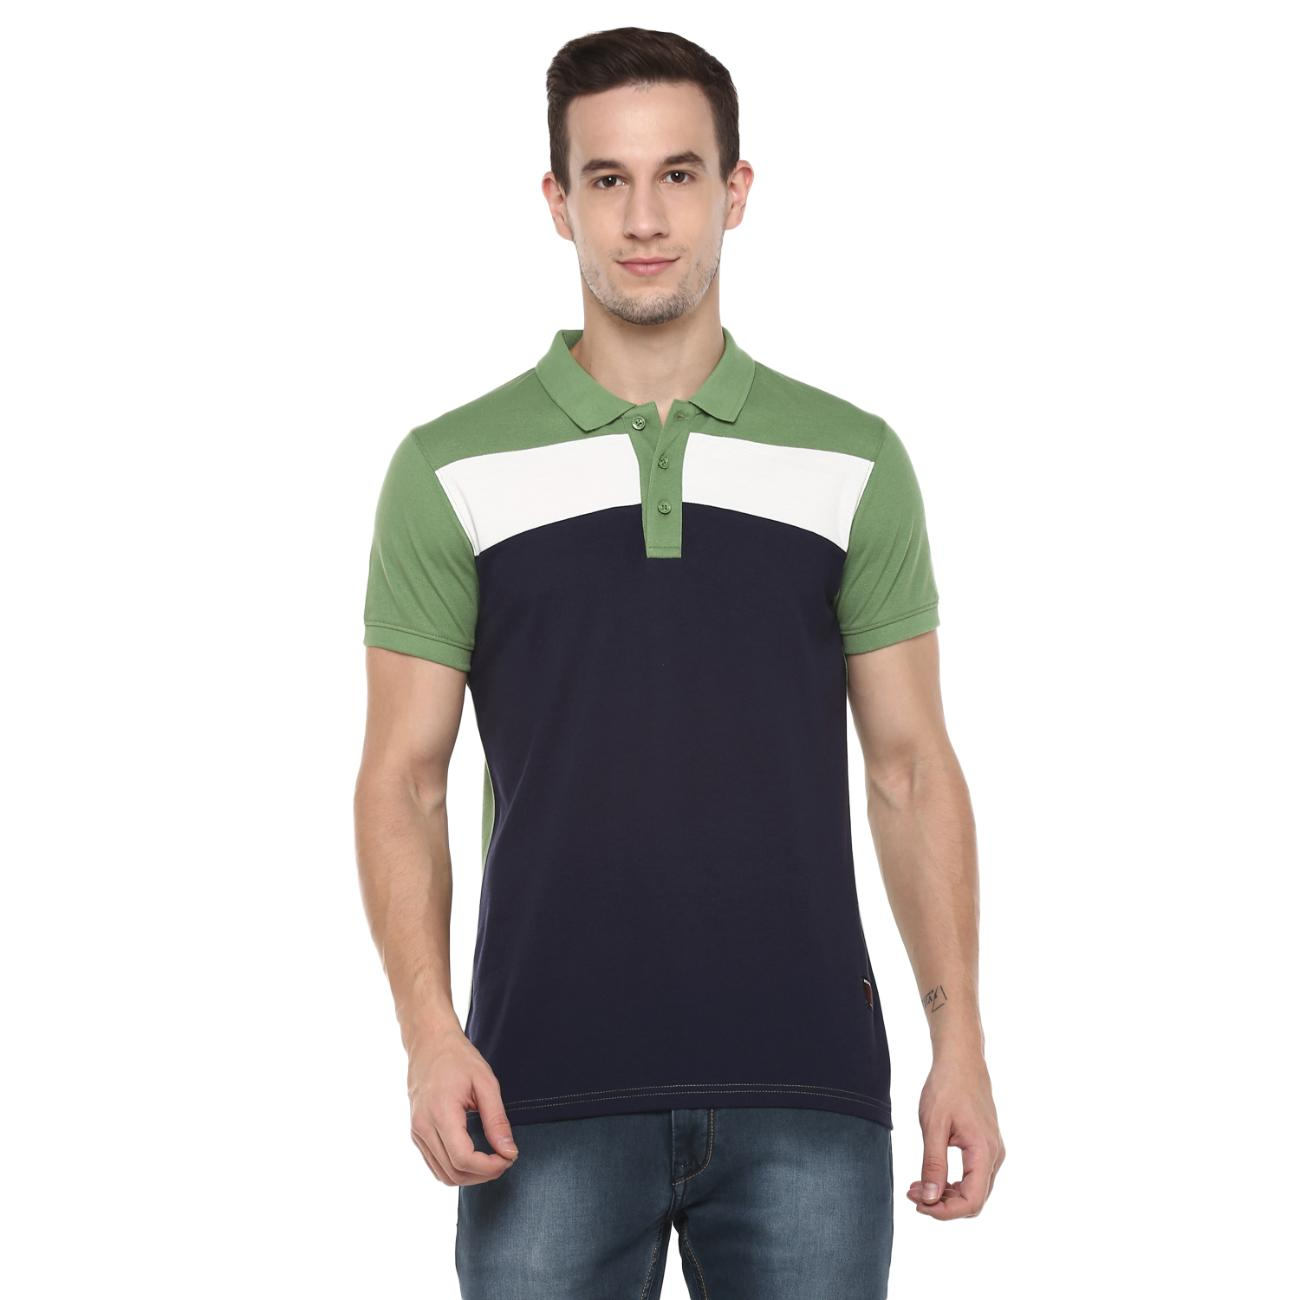 Blue and Green TShirts from Red Chief